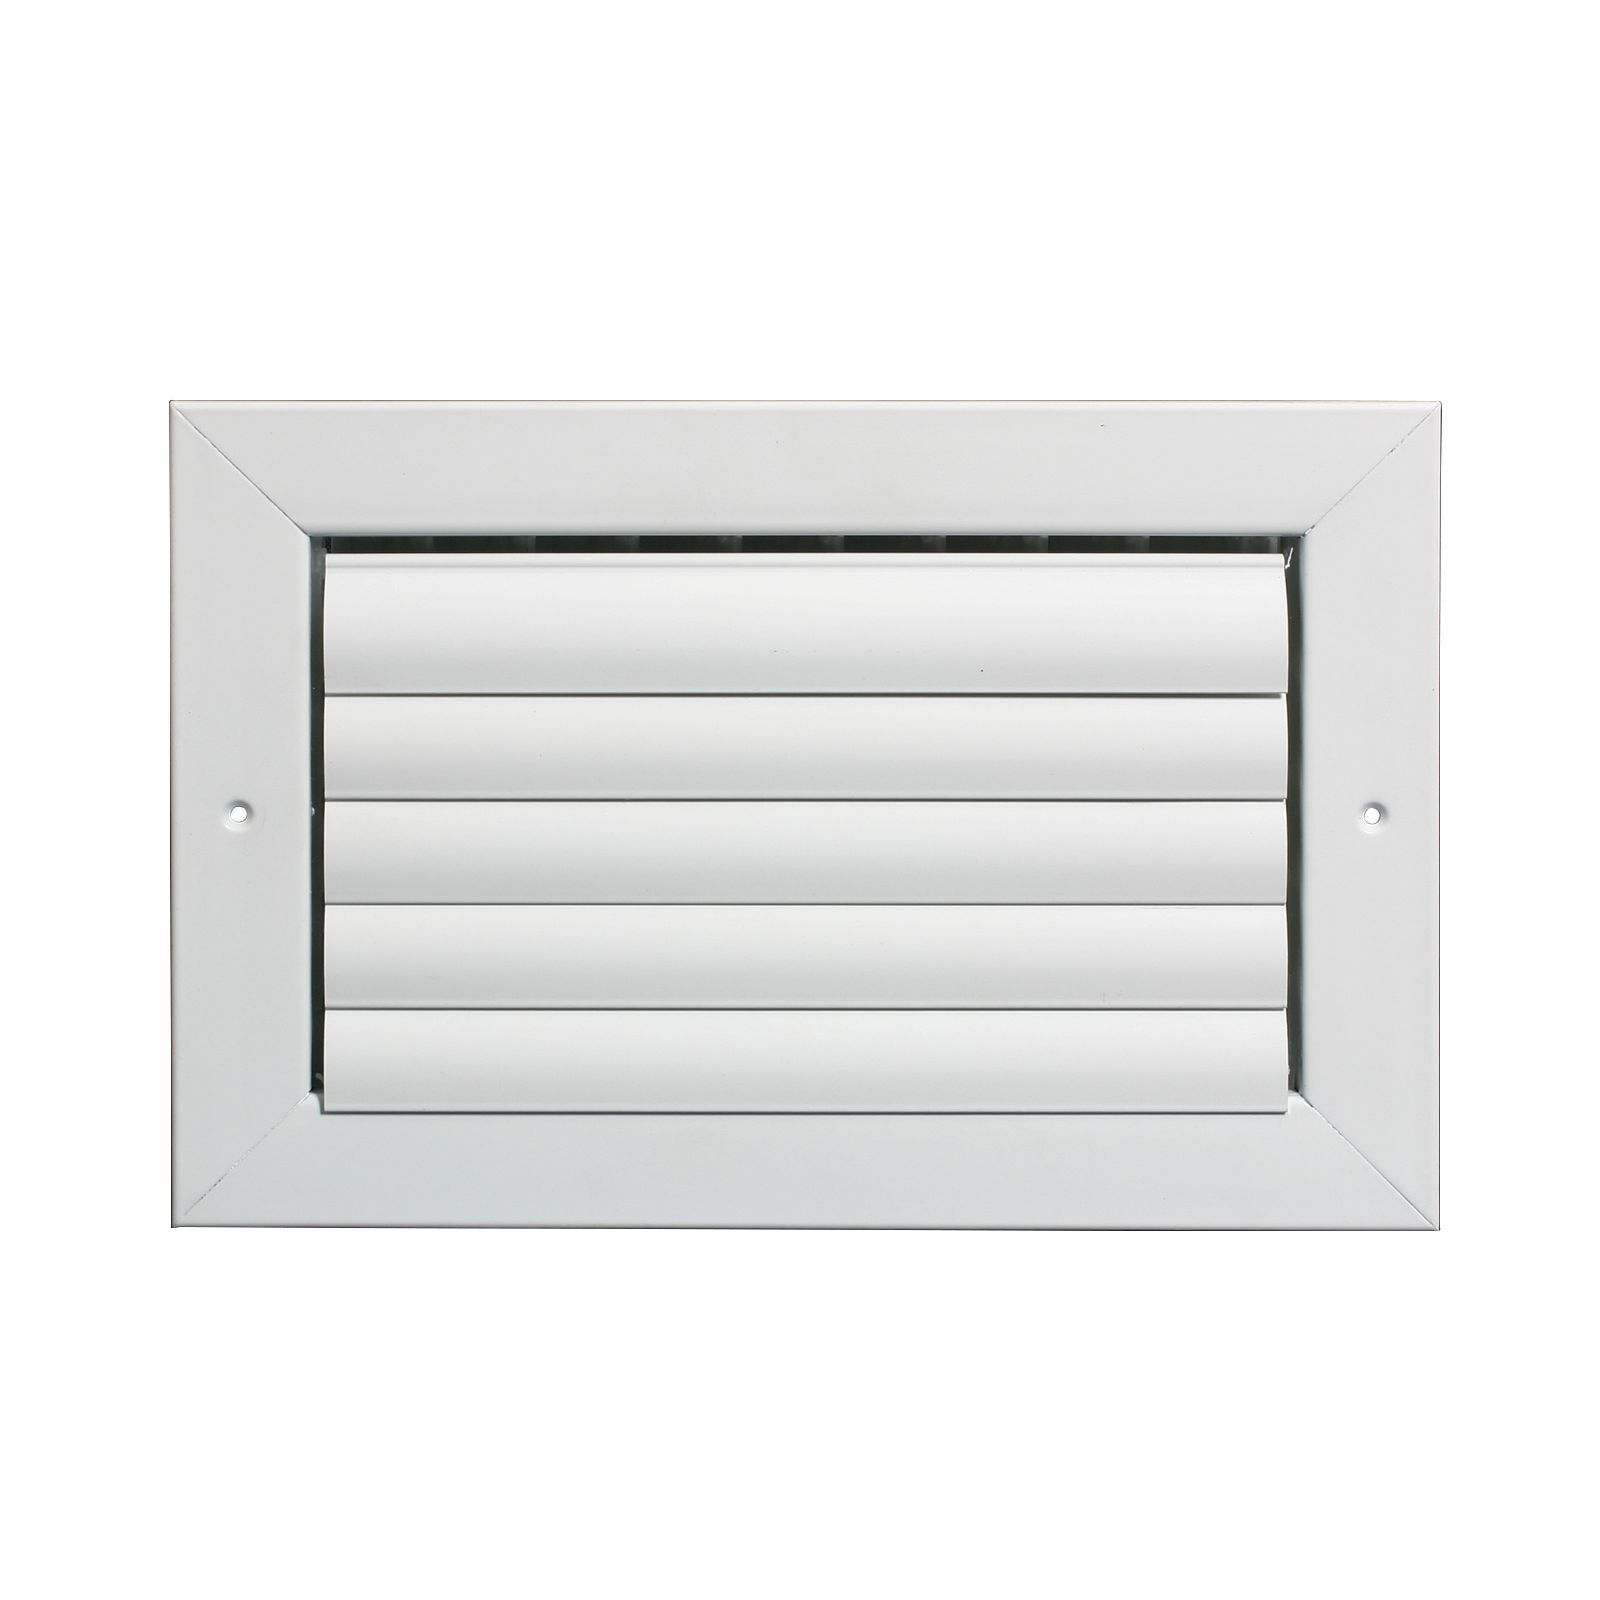 "Grille Tech CL1M1408 - Aluminum Ceiling 1-Way Deflection Supply, Multi-shutter 14"" X 8"" White"